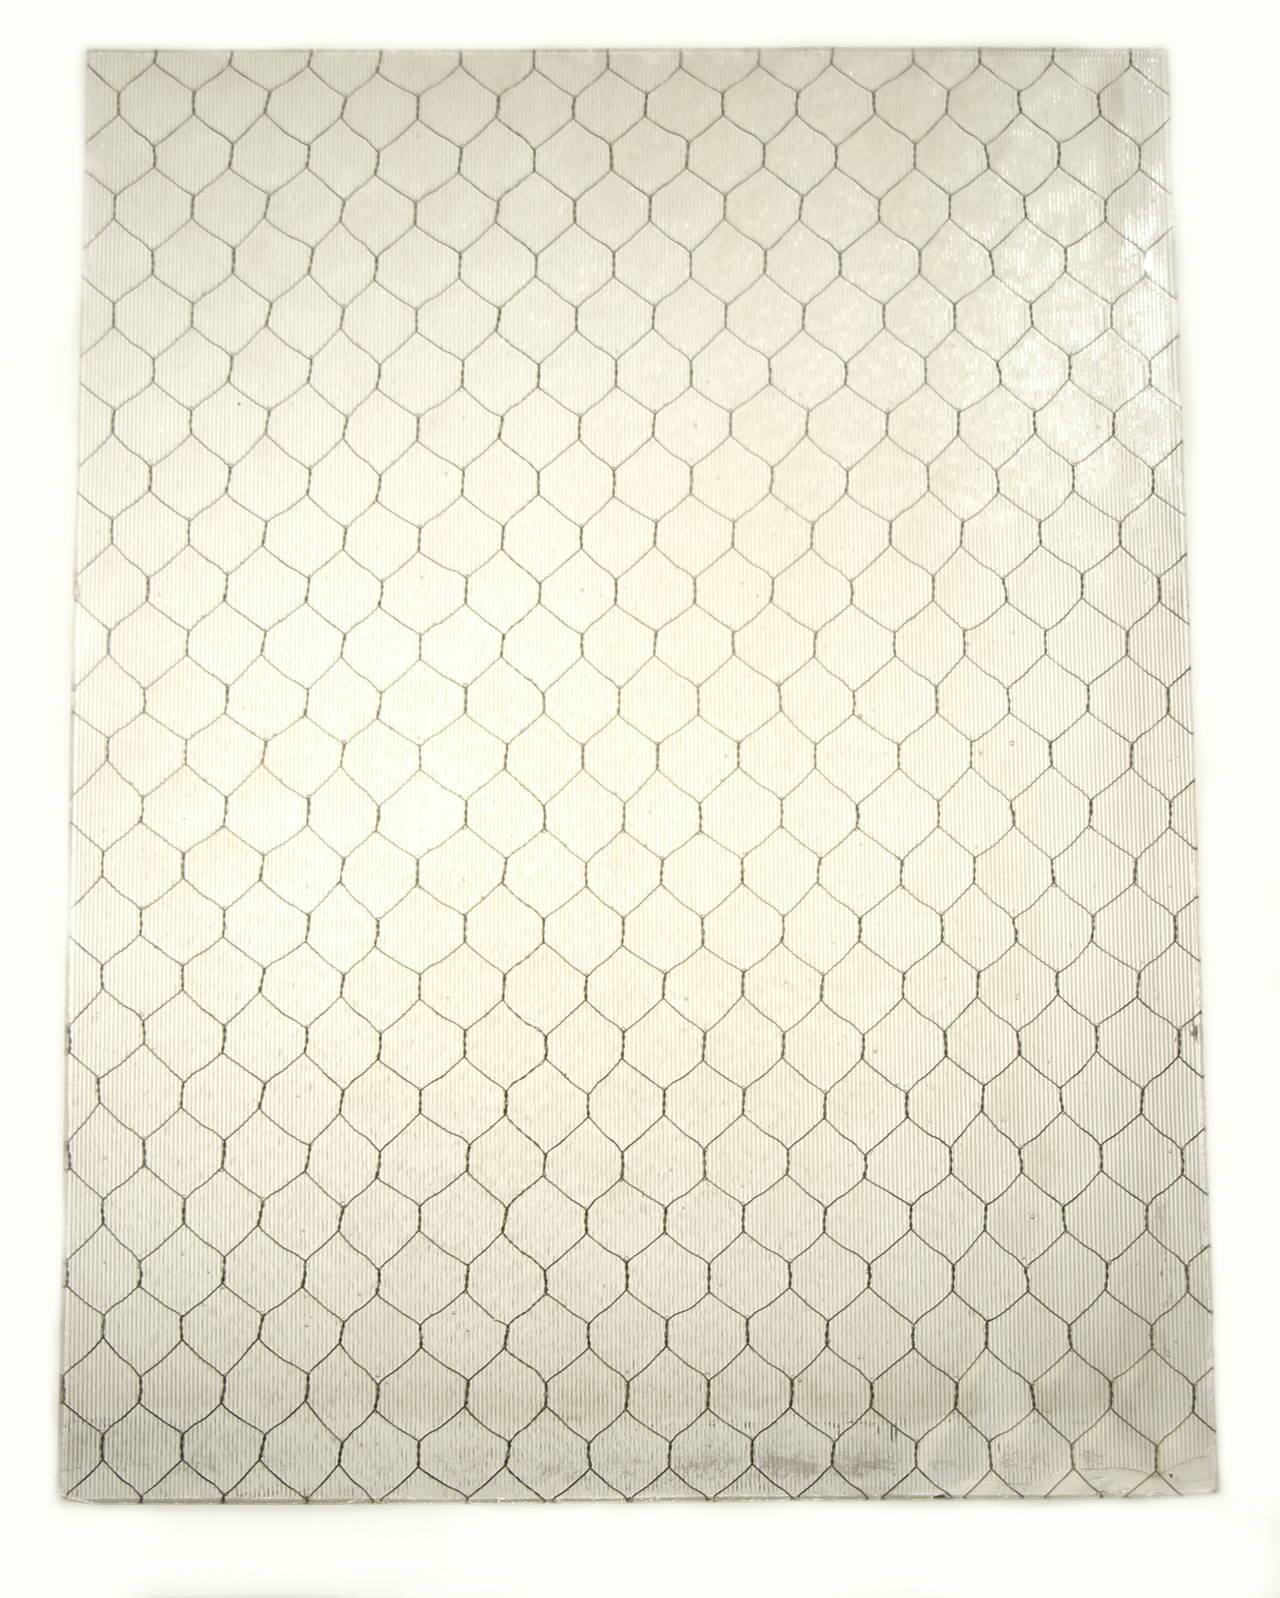 1920s Ribbed Textured Vintage Chicken Wire Glass For Sale at 1stdibs